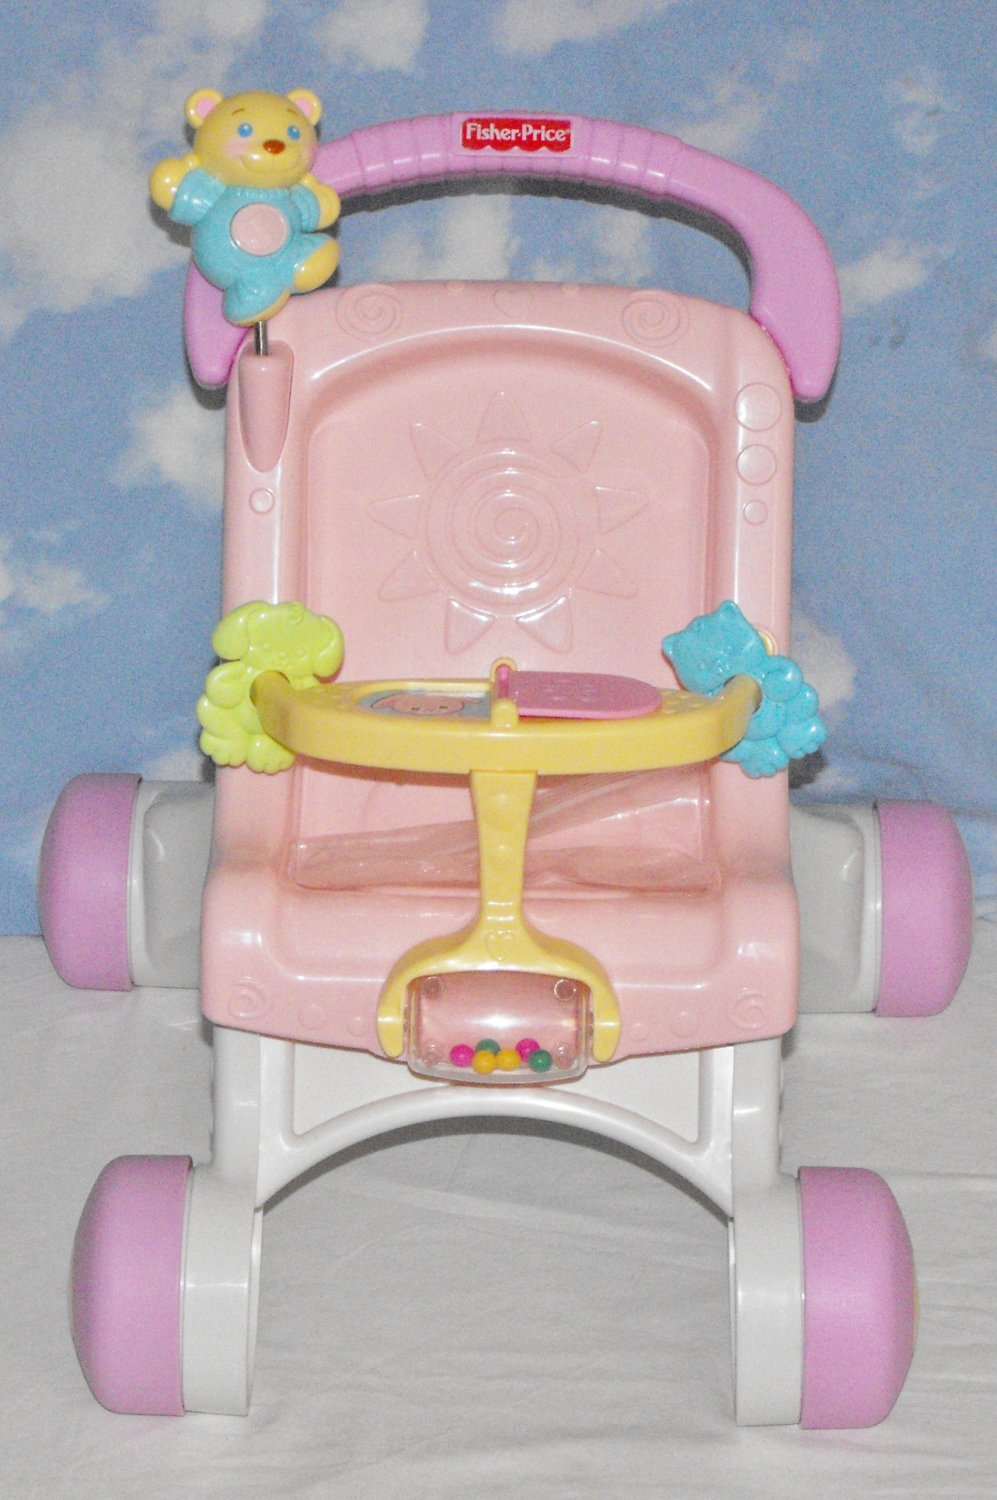 *SOLD~Awaiting Feedback~Fisher Price Brilliant Basics PINK Stroller Styled Walker